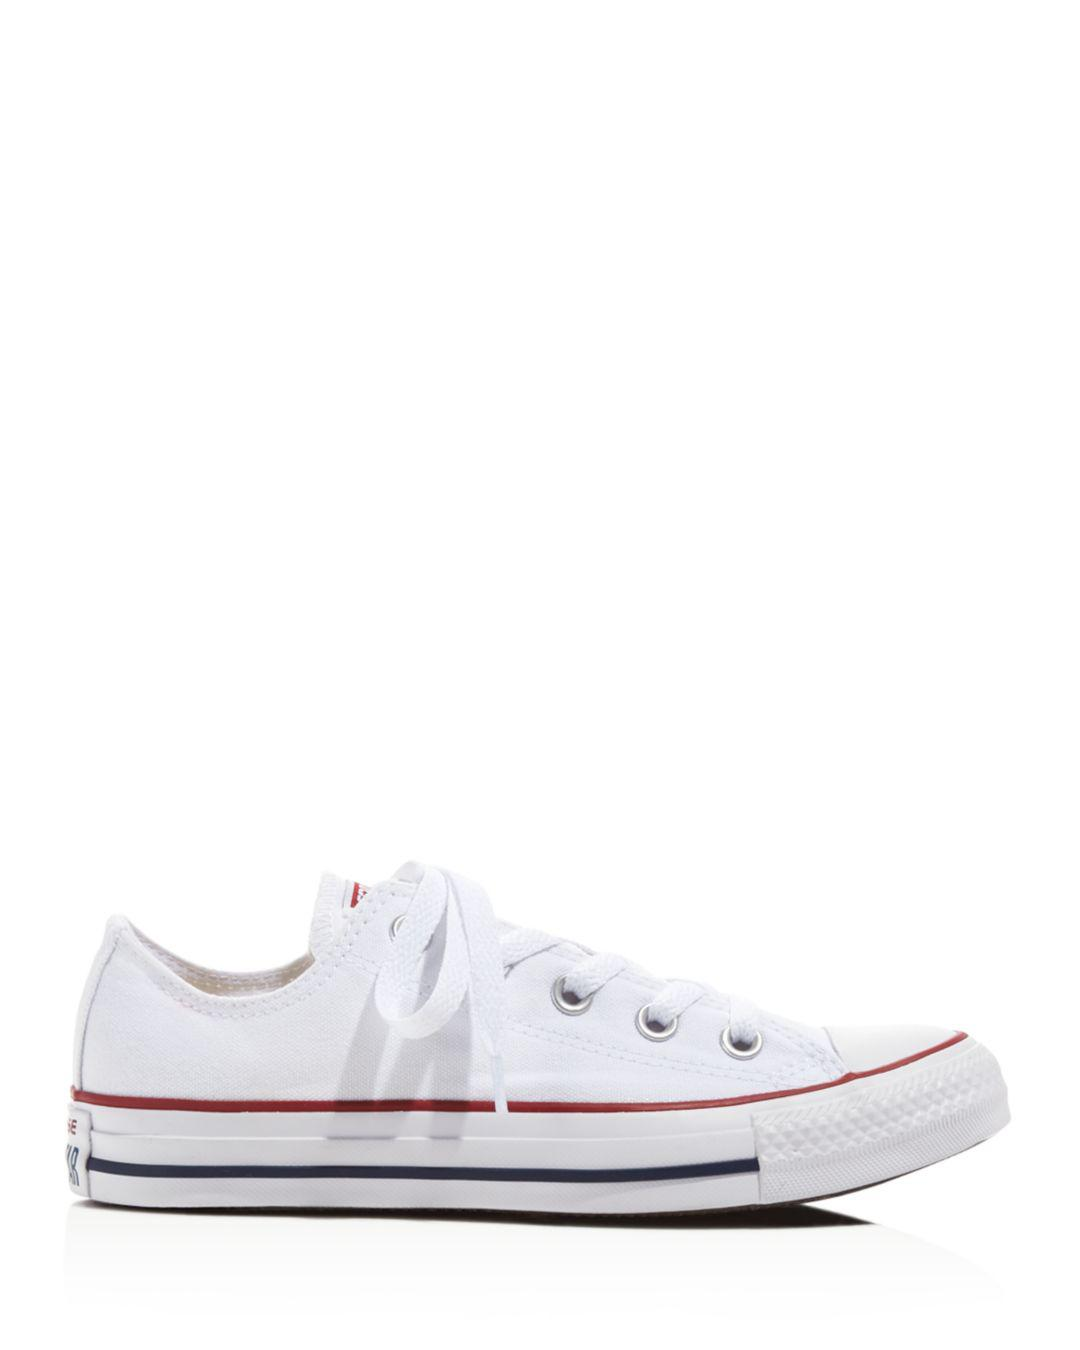 bbd0d071f96e43 Lyst - Converse Women s Chuck Taylor All Star Lace Up Sneakers in White